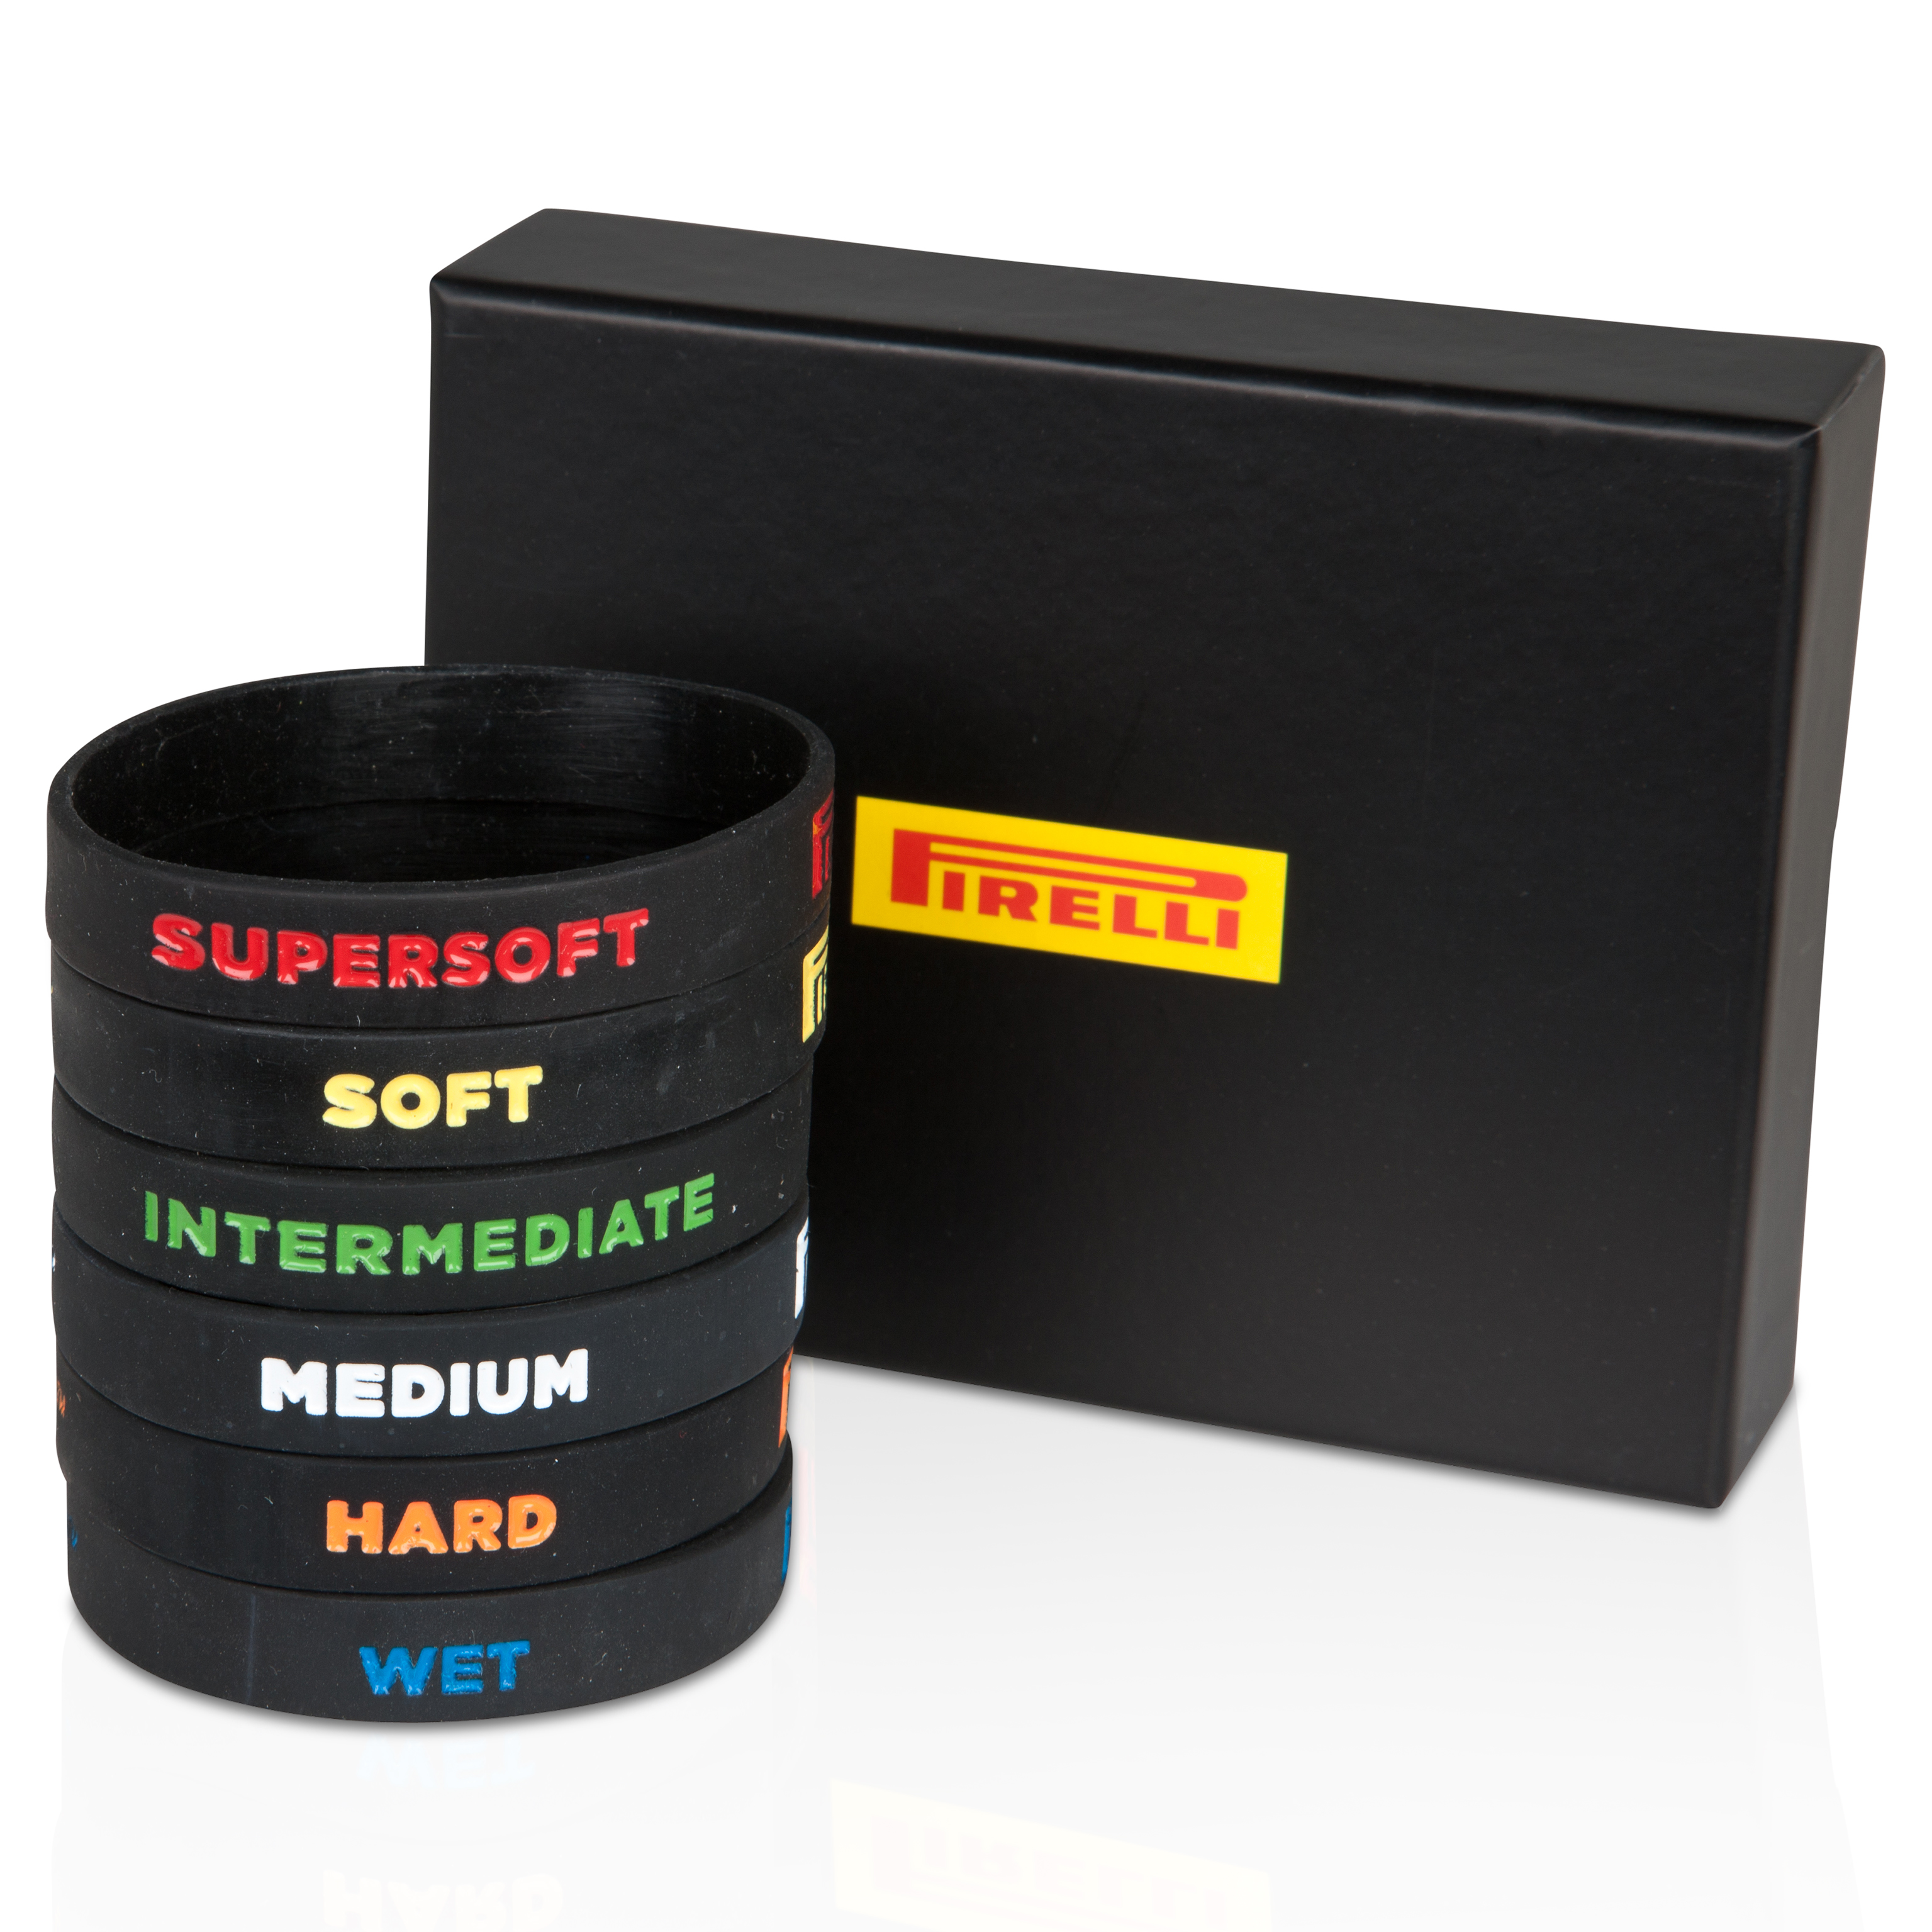 Pirelli Exclusive Rubber Wristband Set